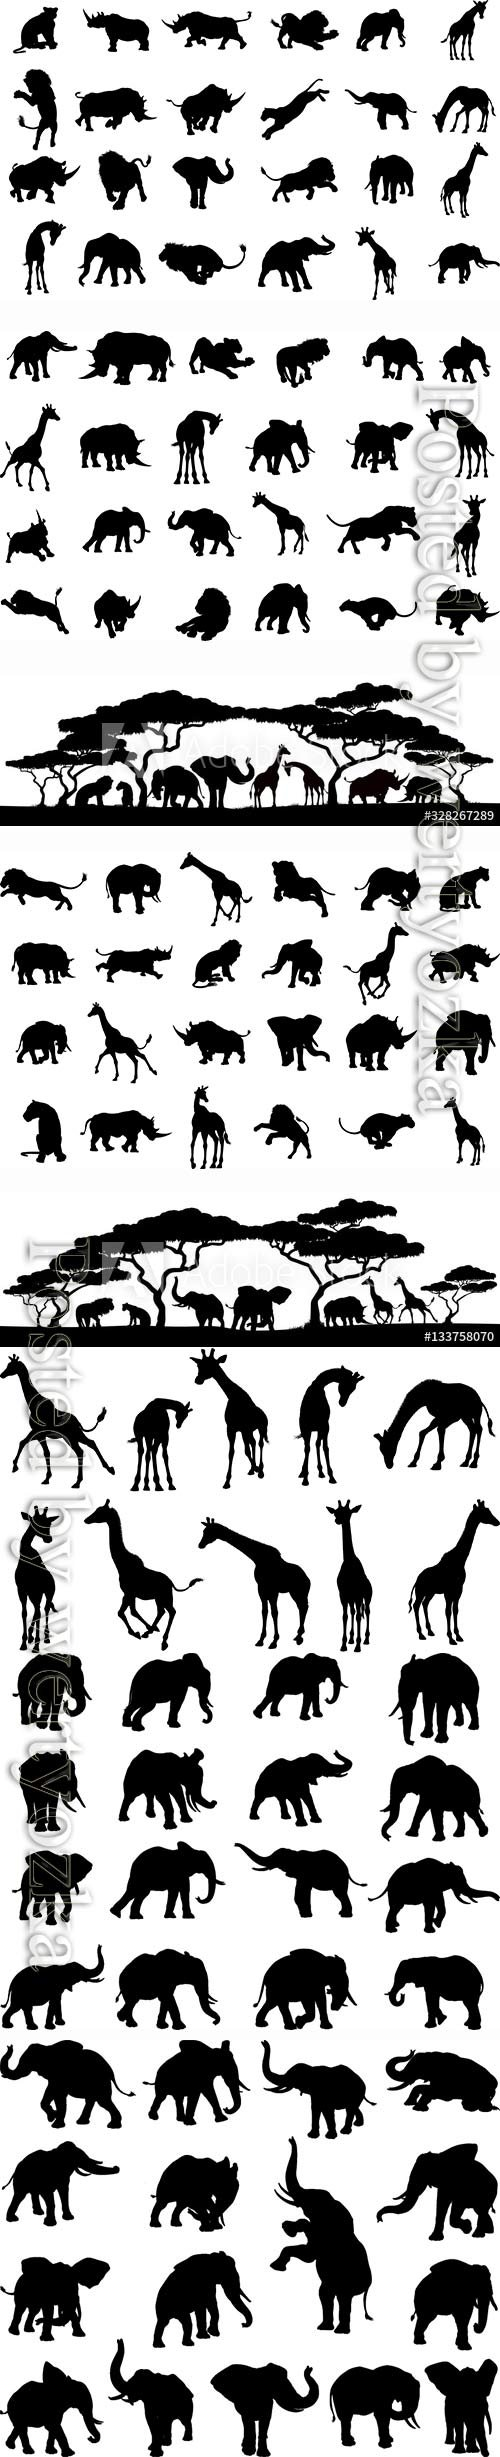 Silhouettes of animals in vector, elephant, giraffe, lion, rhino, leopard